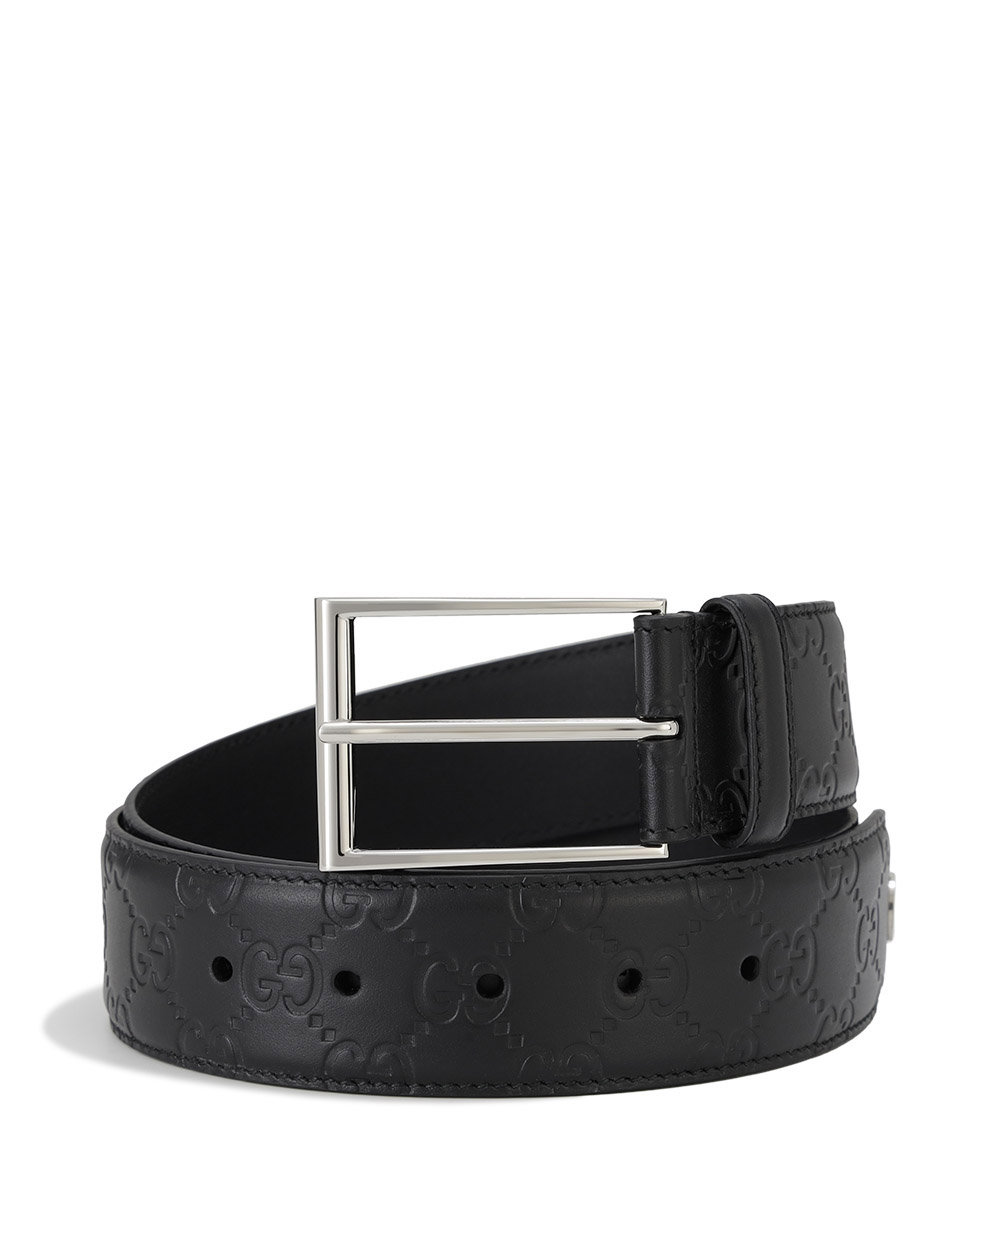 Signature Belt with Double G Detail